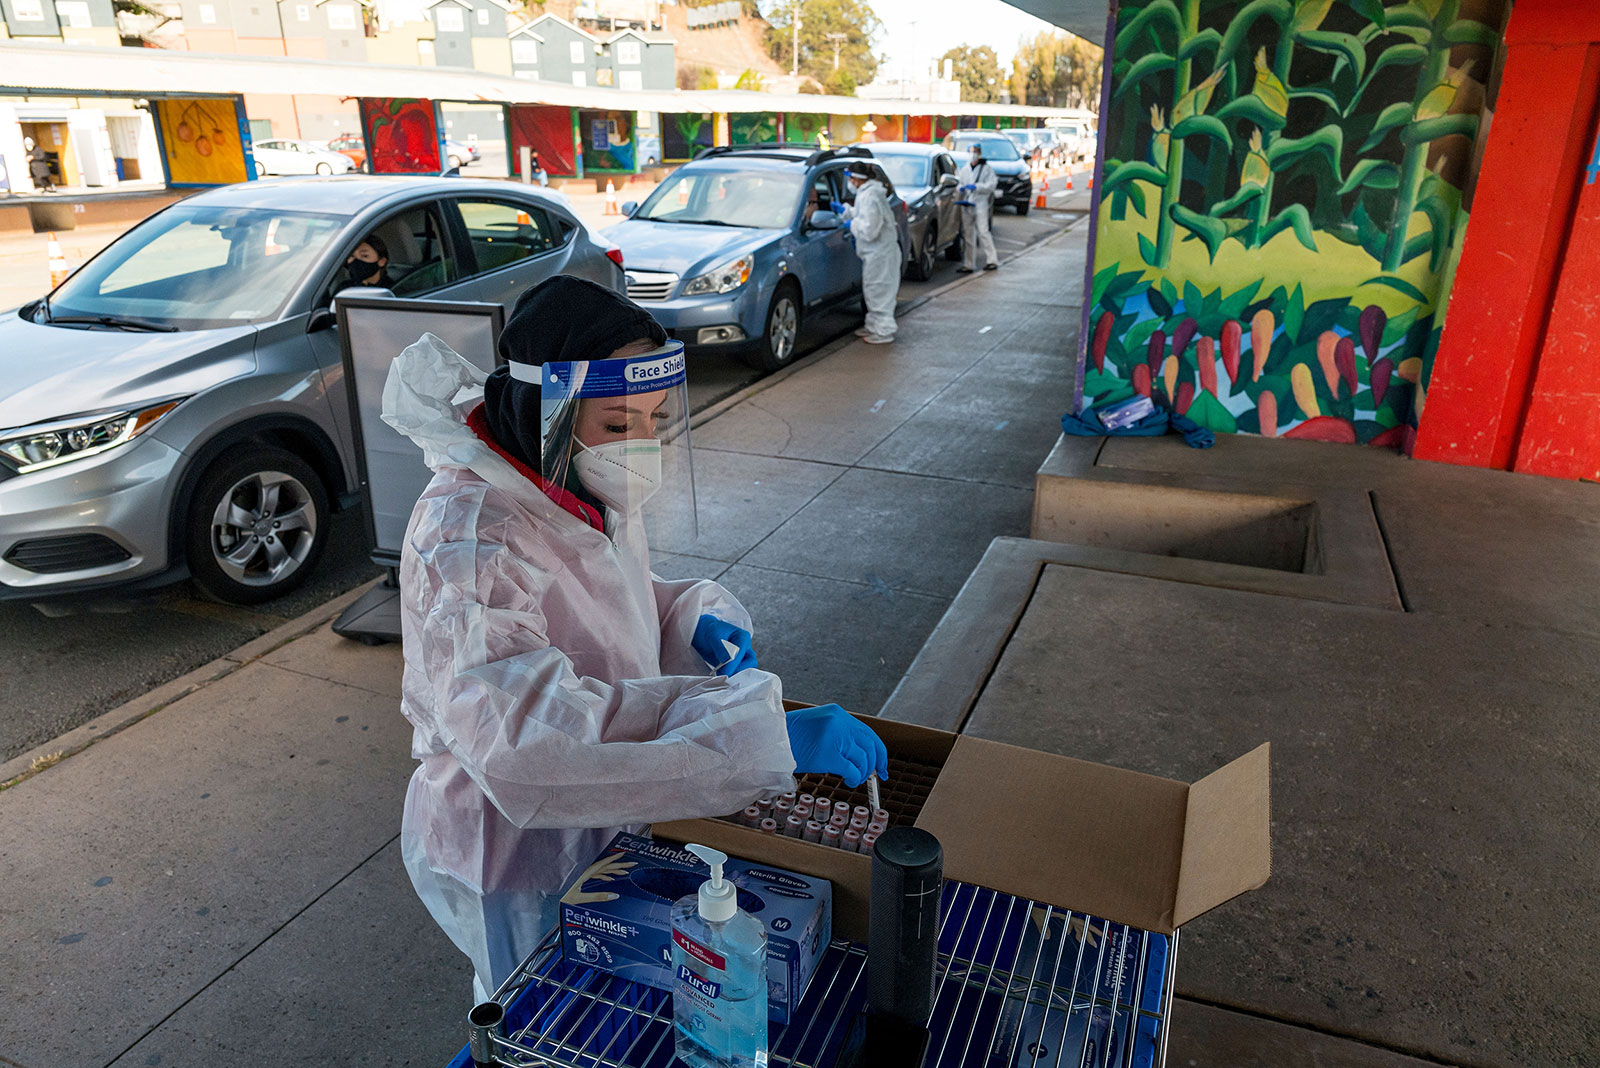 A medical worker places test tubes into a cardboard box at a drive-thru coronavirus testing site in San Francisco, California, on November 19.